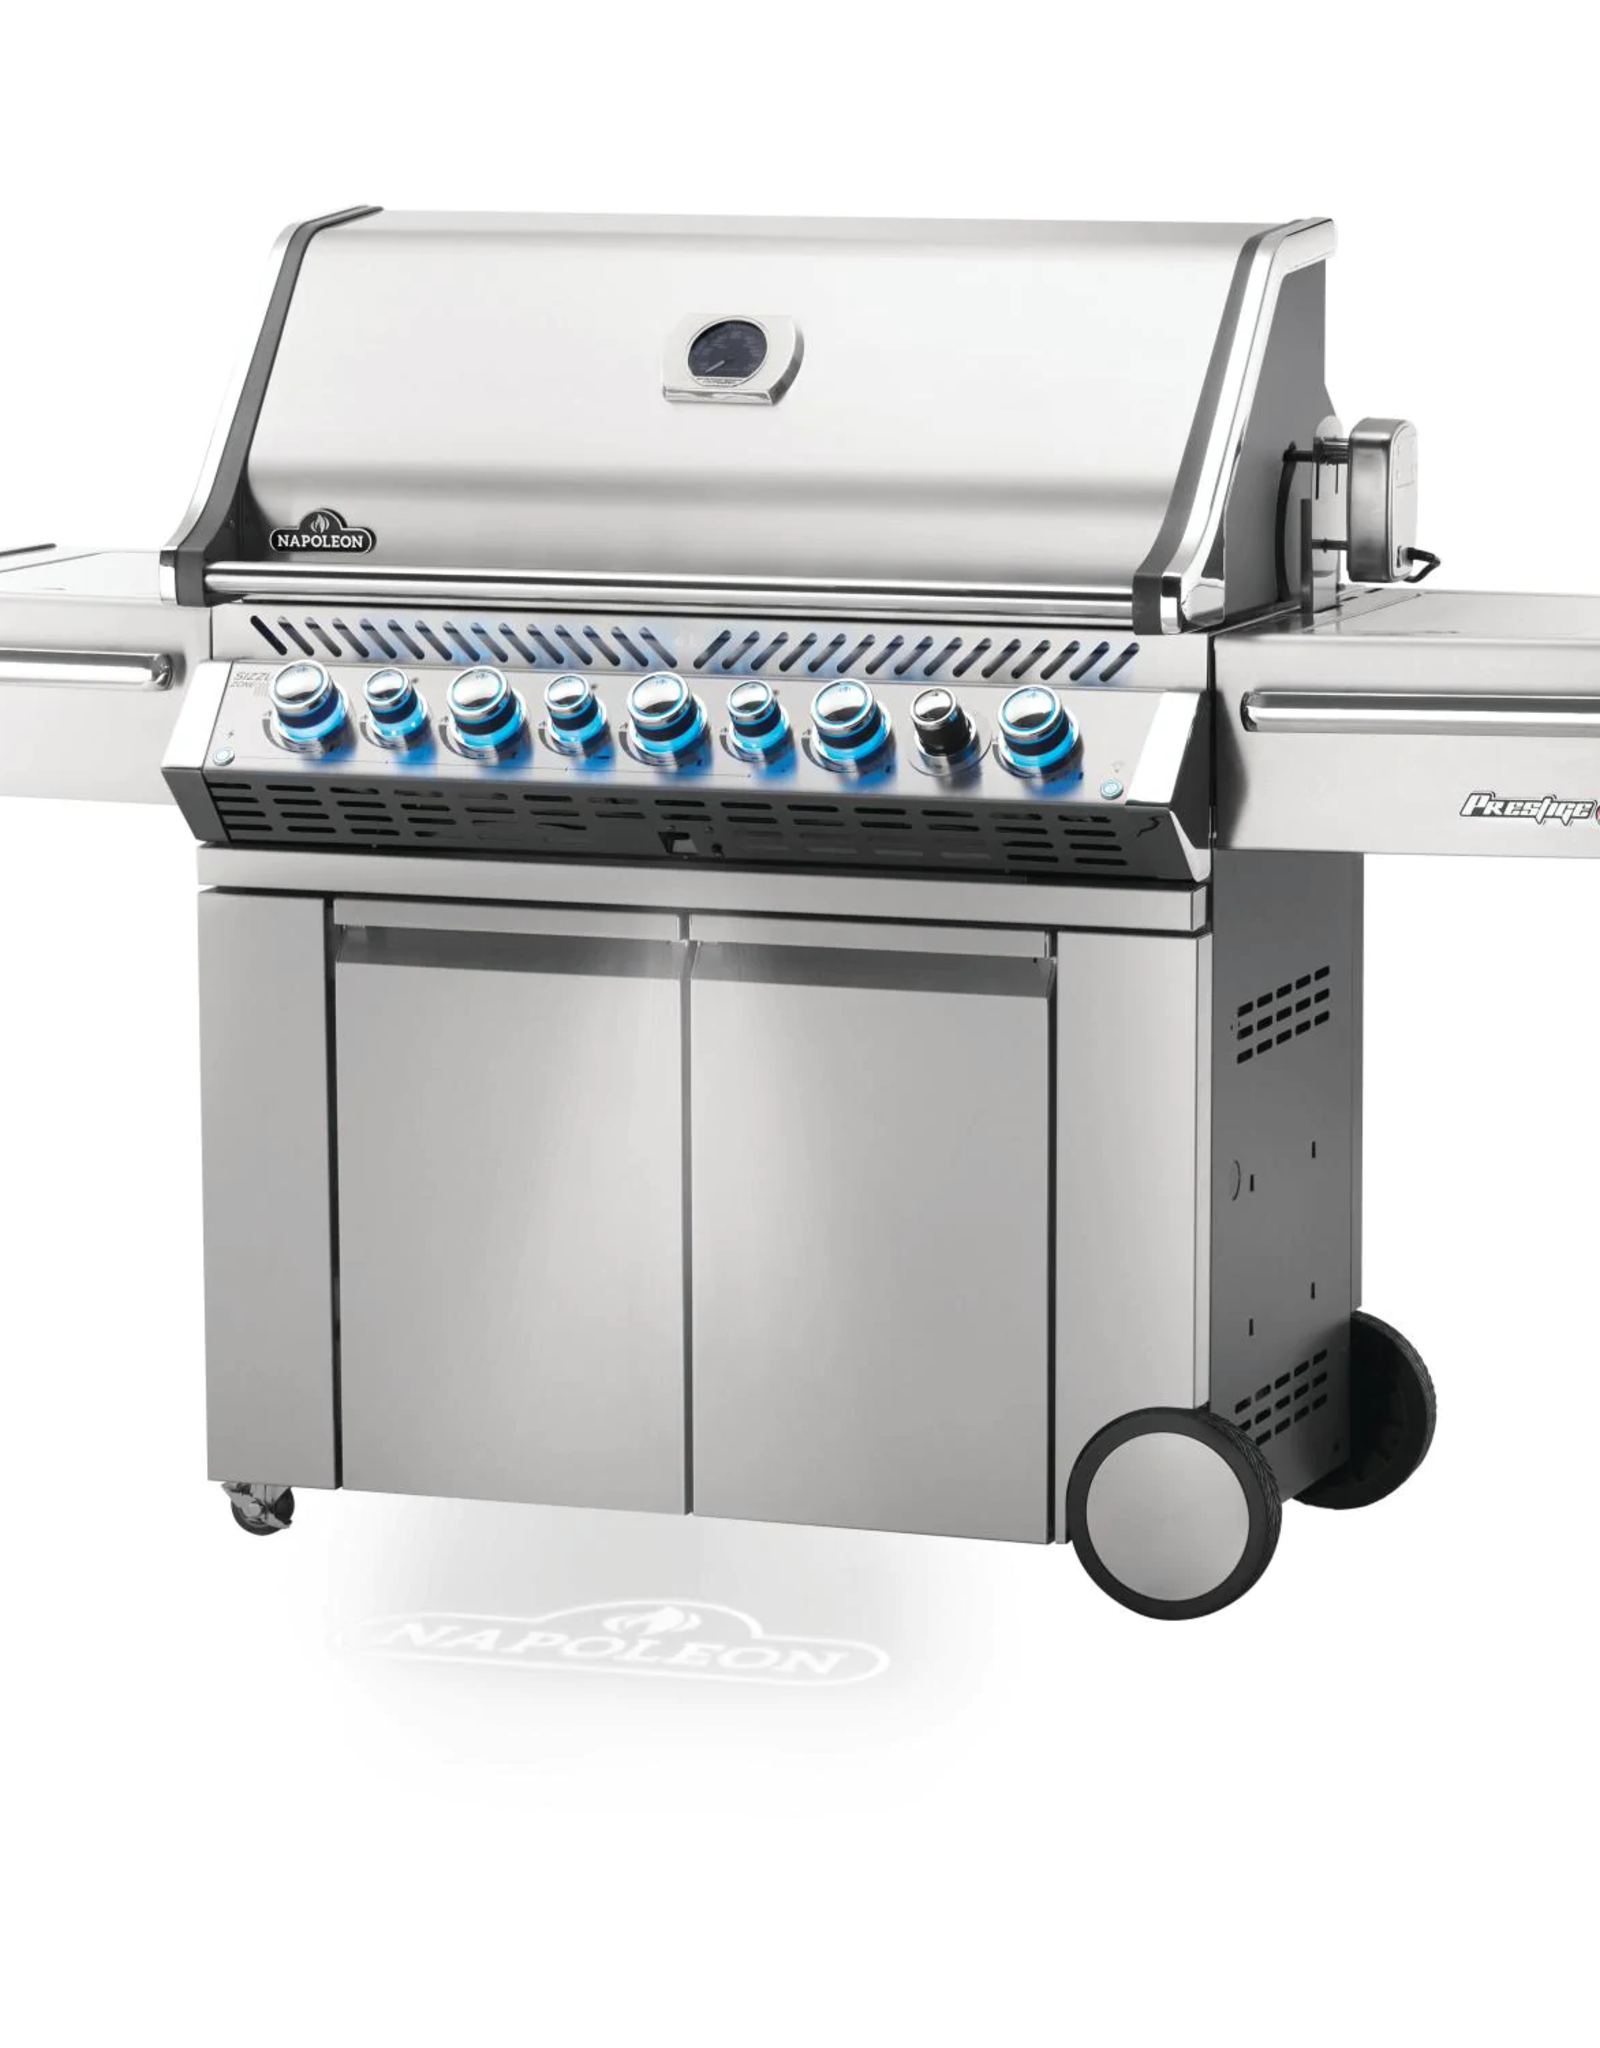 Napoleon Napoleon Prestige PRO 665 Natural Gas Grill with Infrared Rear Burner and Infrared Side Burner and Rotisserie Kit - PRO665RSIBNSS-3